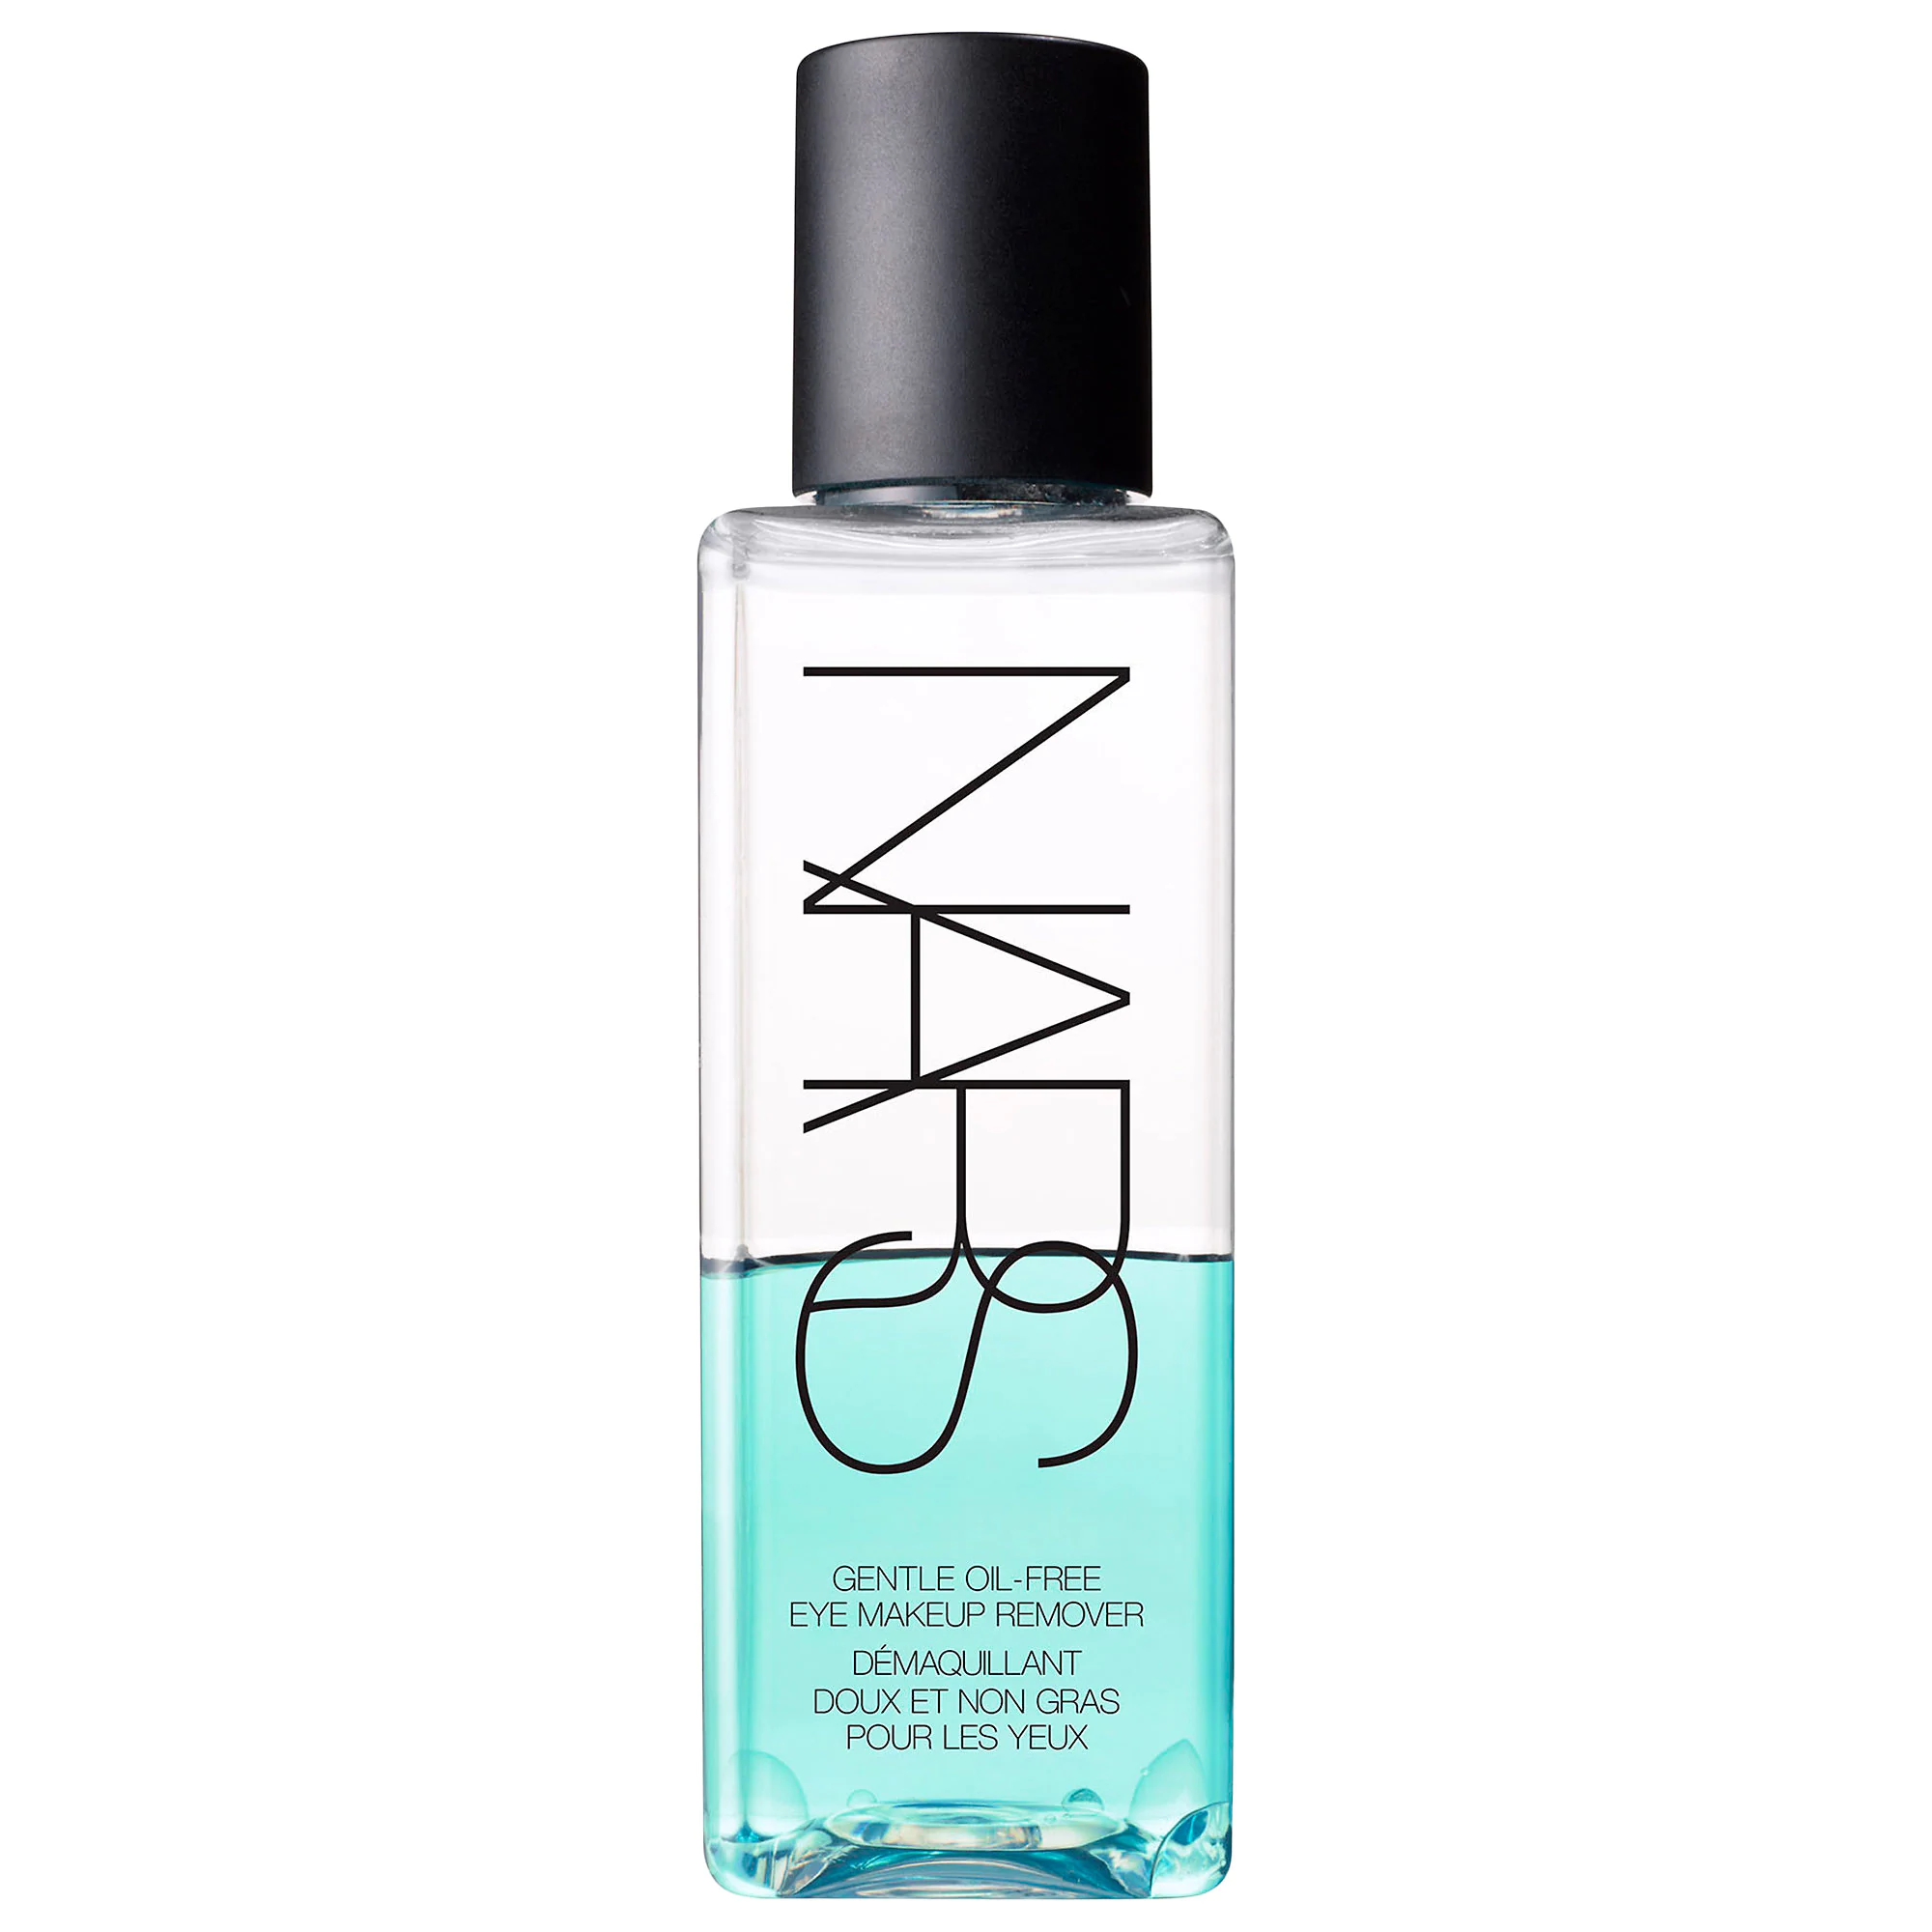 NARS-Gentle Oil-Free Eye Makeup Remover